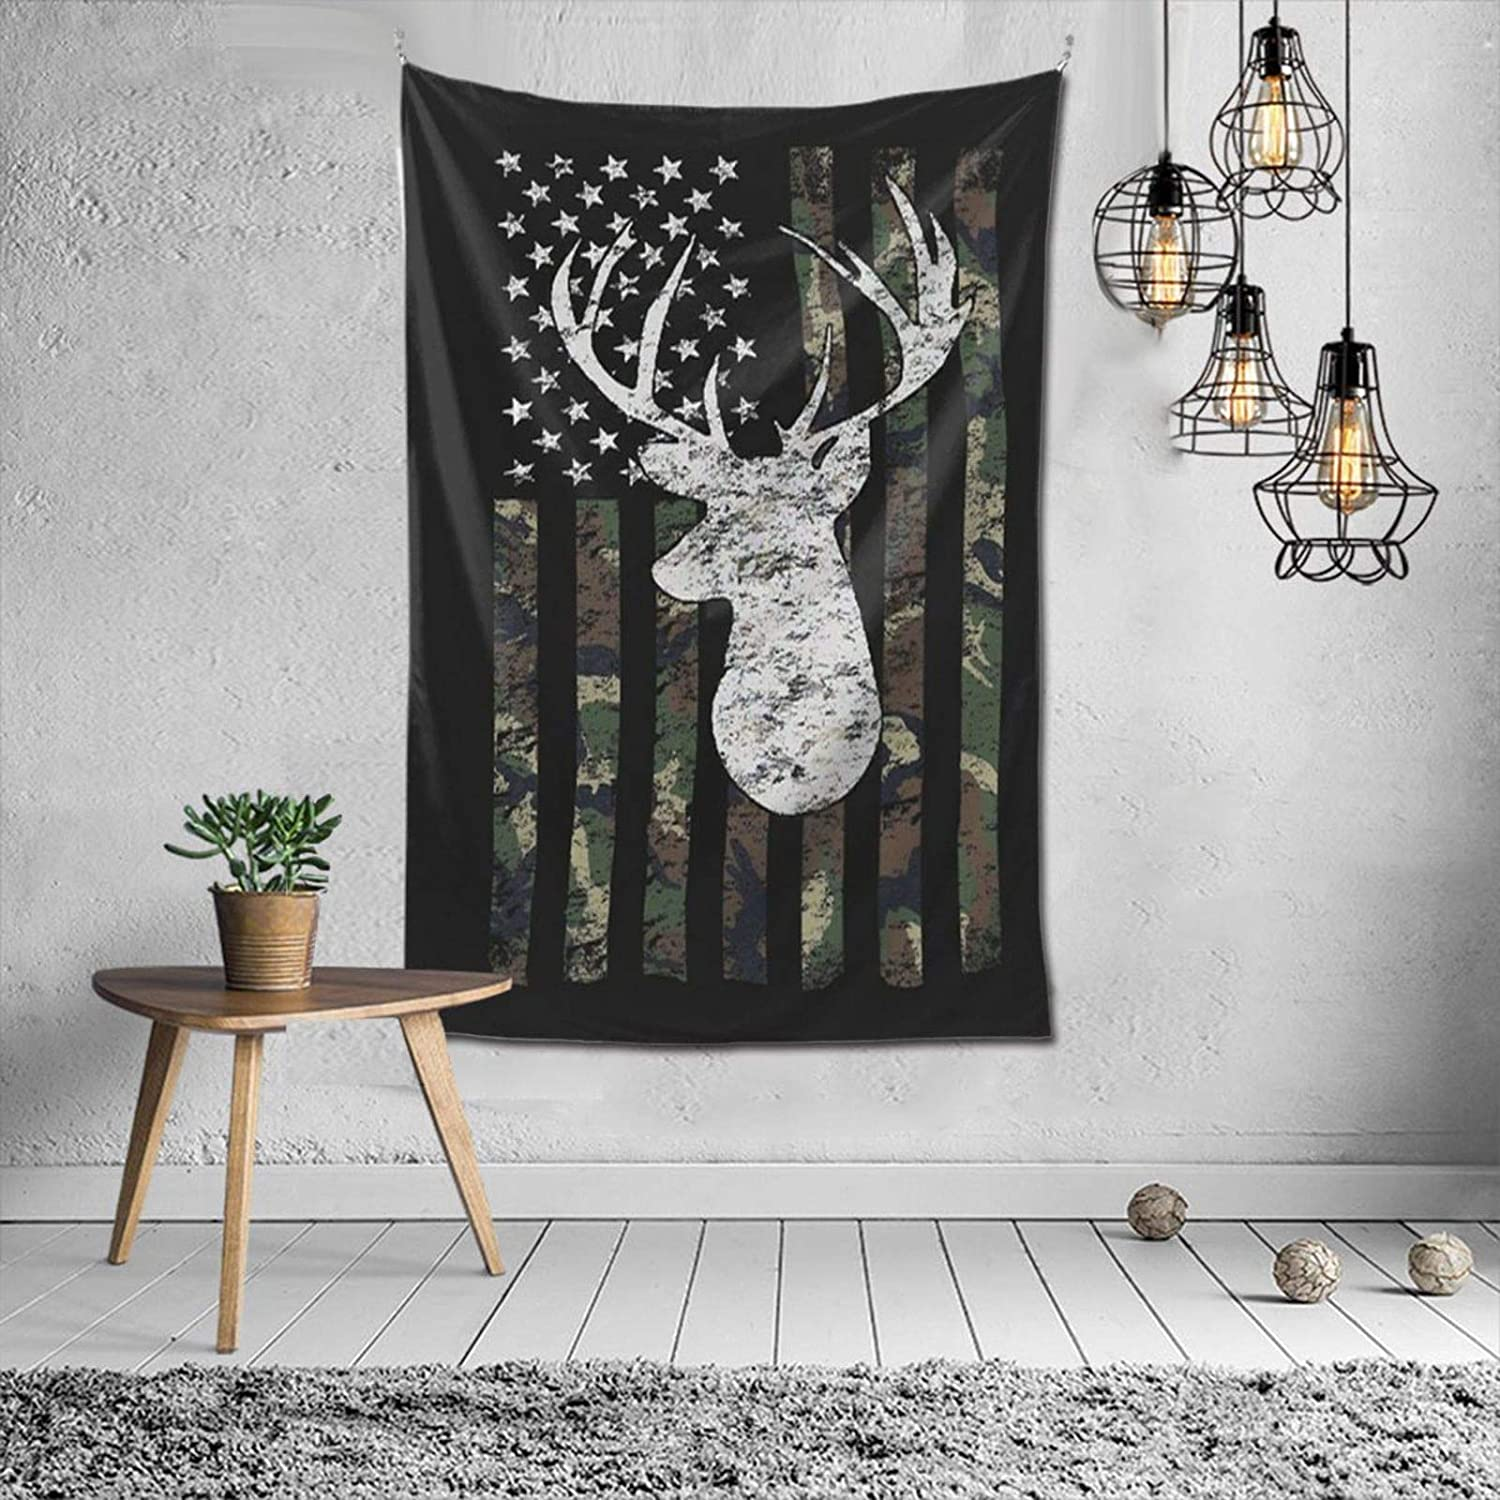 NiYoung Tapestry Wall Hanging Decorative Arts Wall Tapestry for Living Room, Bedroom, College Dorm, Soft Picnic Backdrop Blanket Deer Camo Camouflage American Flag Hunting Black Tapestry